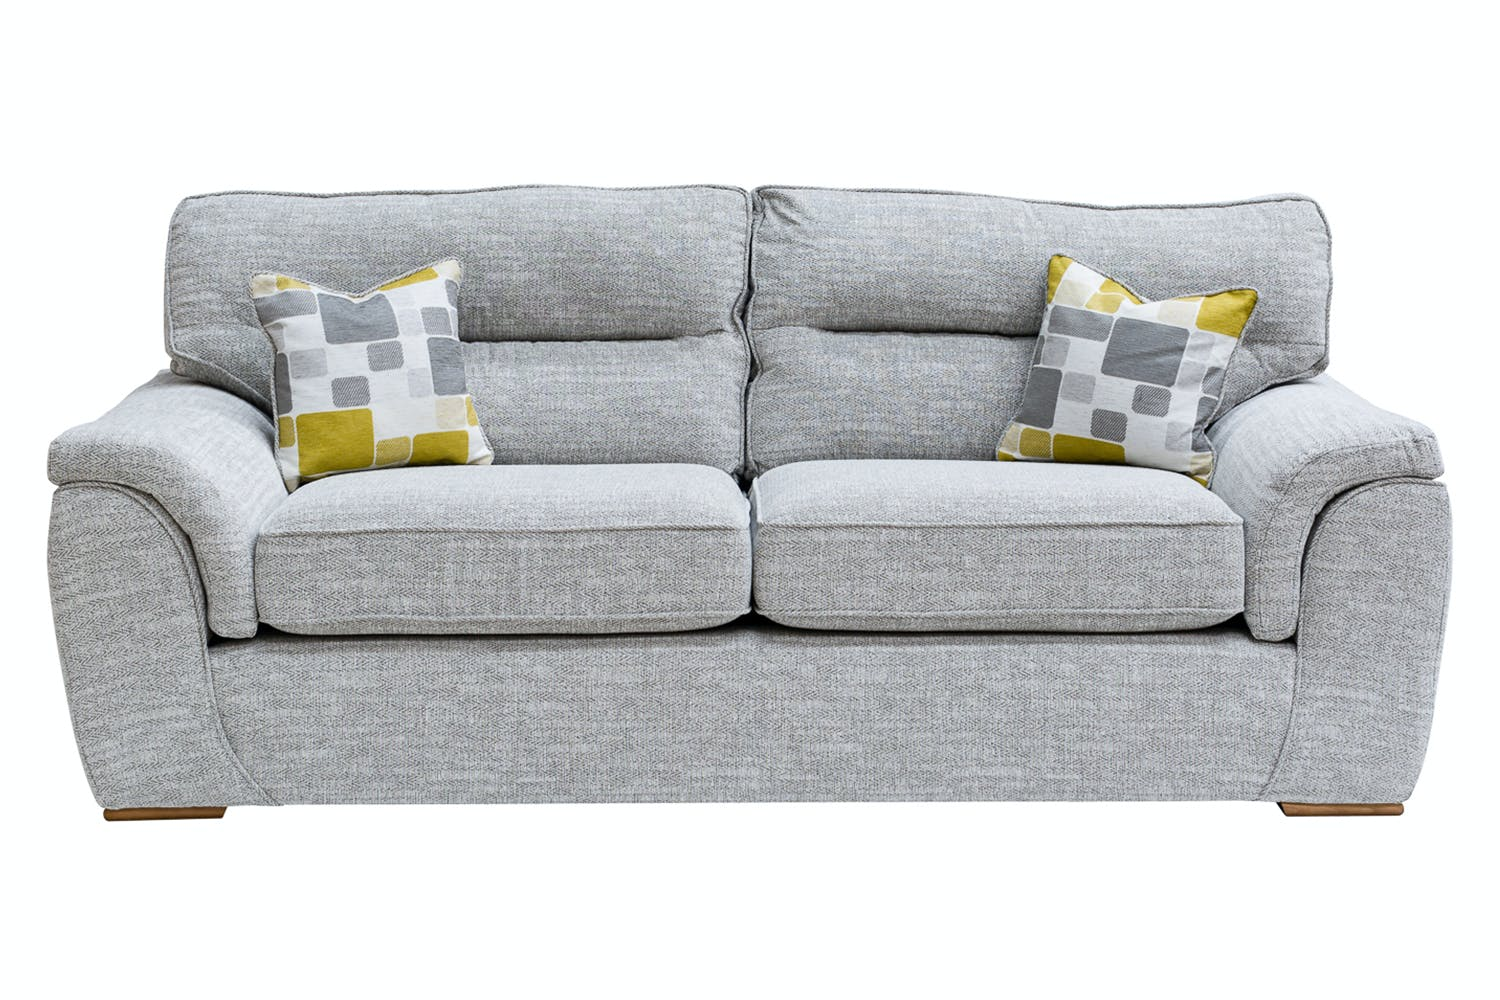 Sadie 3 Seater Sofa